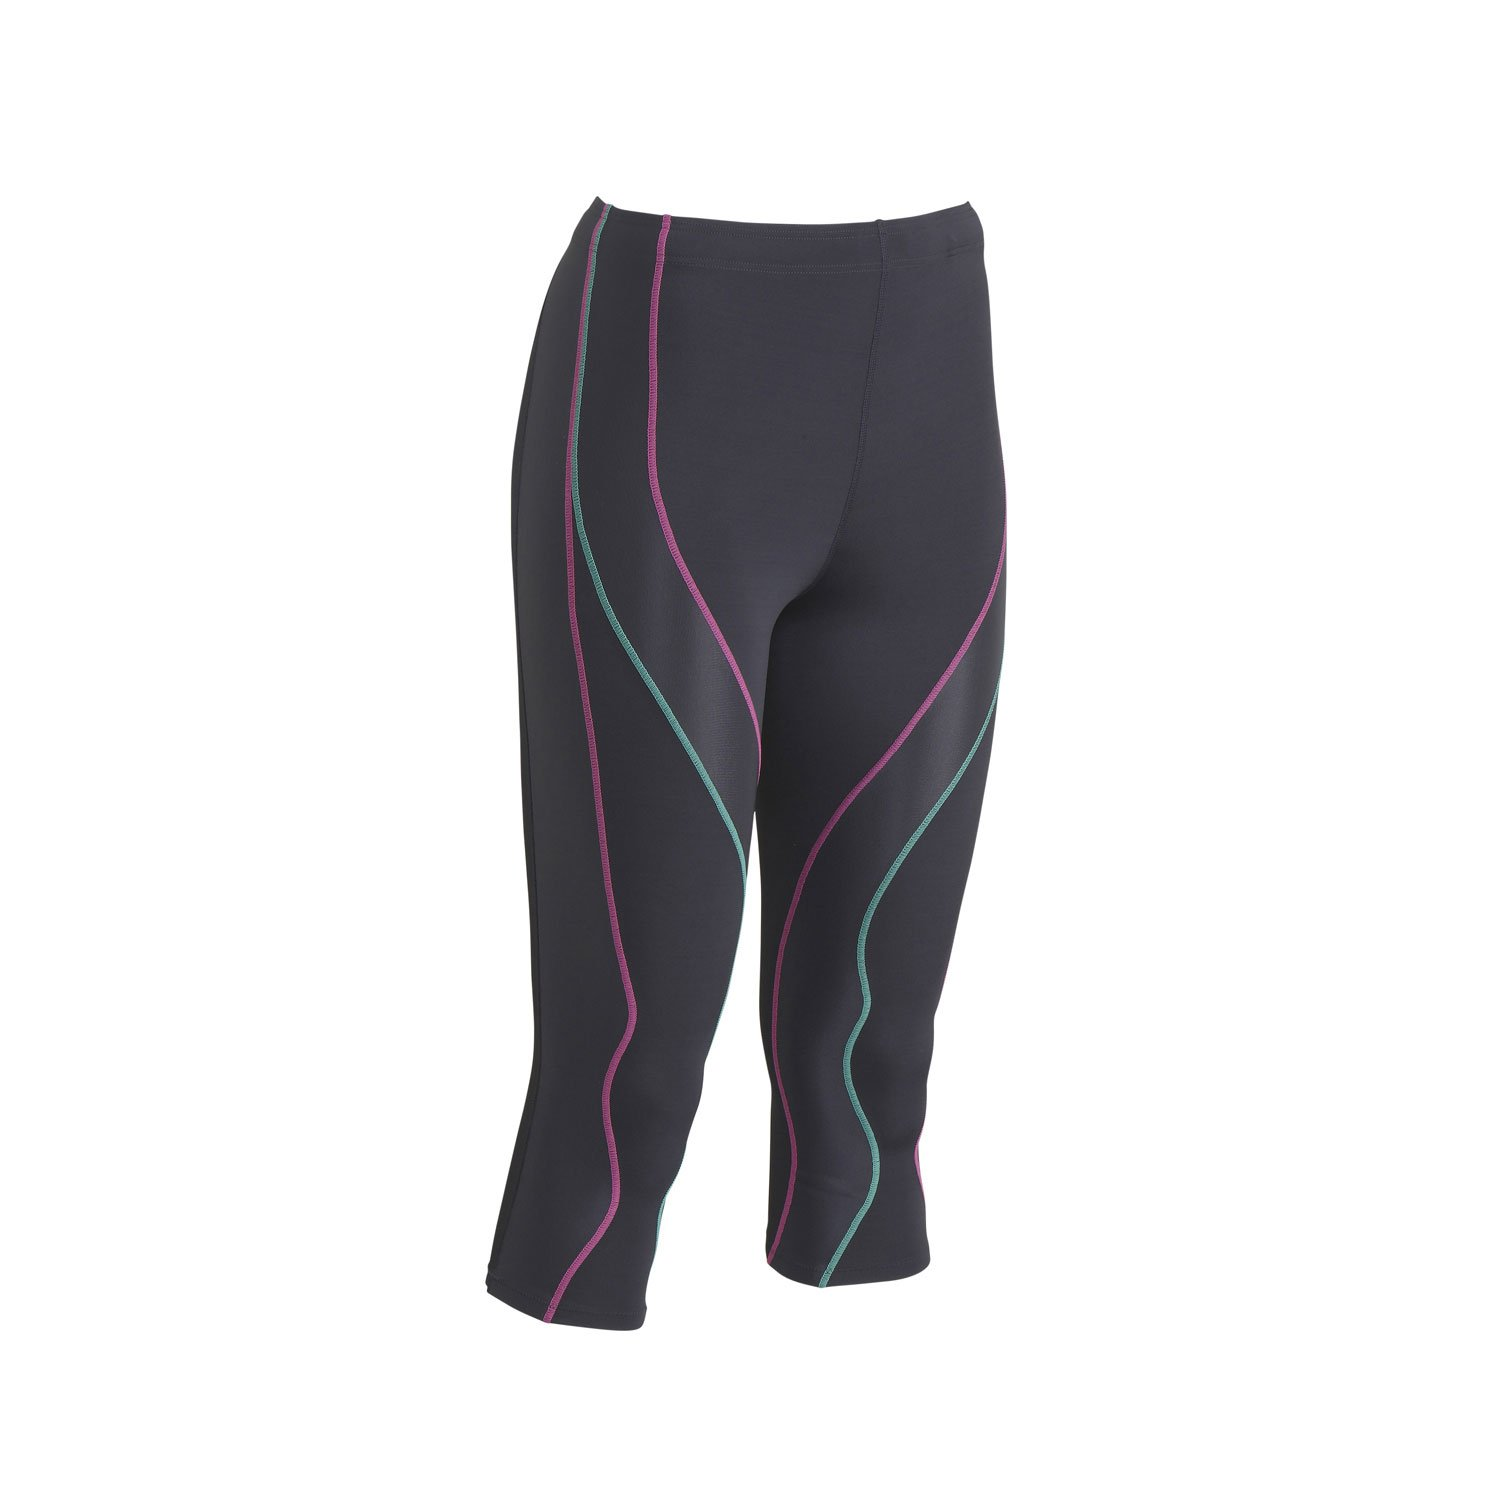 CW-X Women's 3/4 Performx Tights, Grey/Pink/Turquoise, Large by CW-X (Image #1)